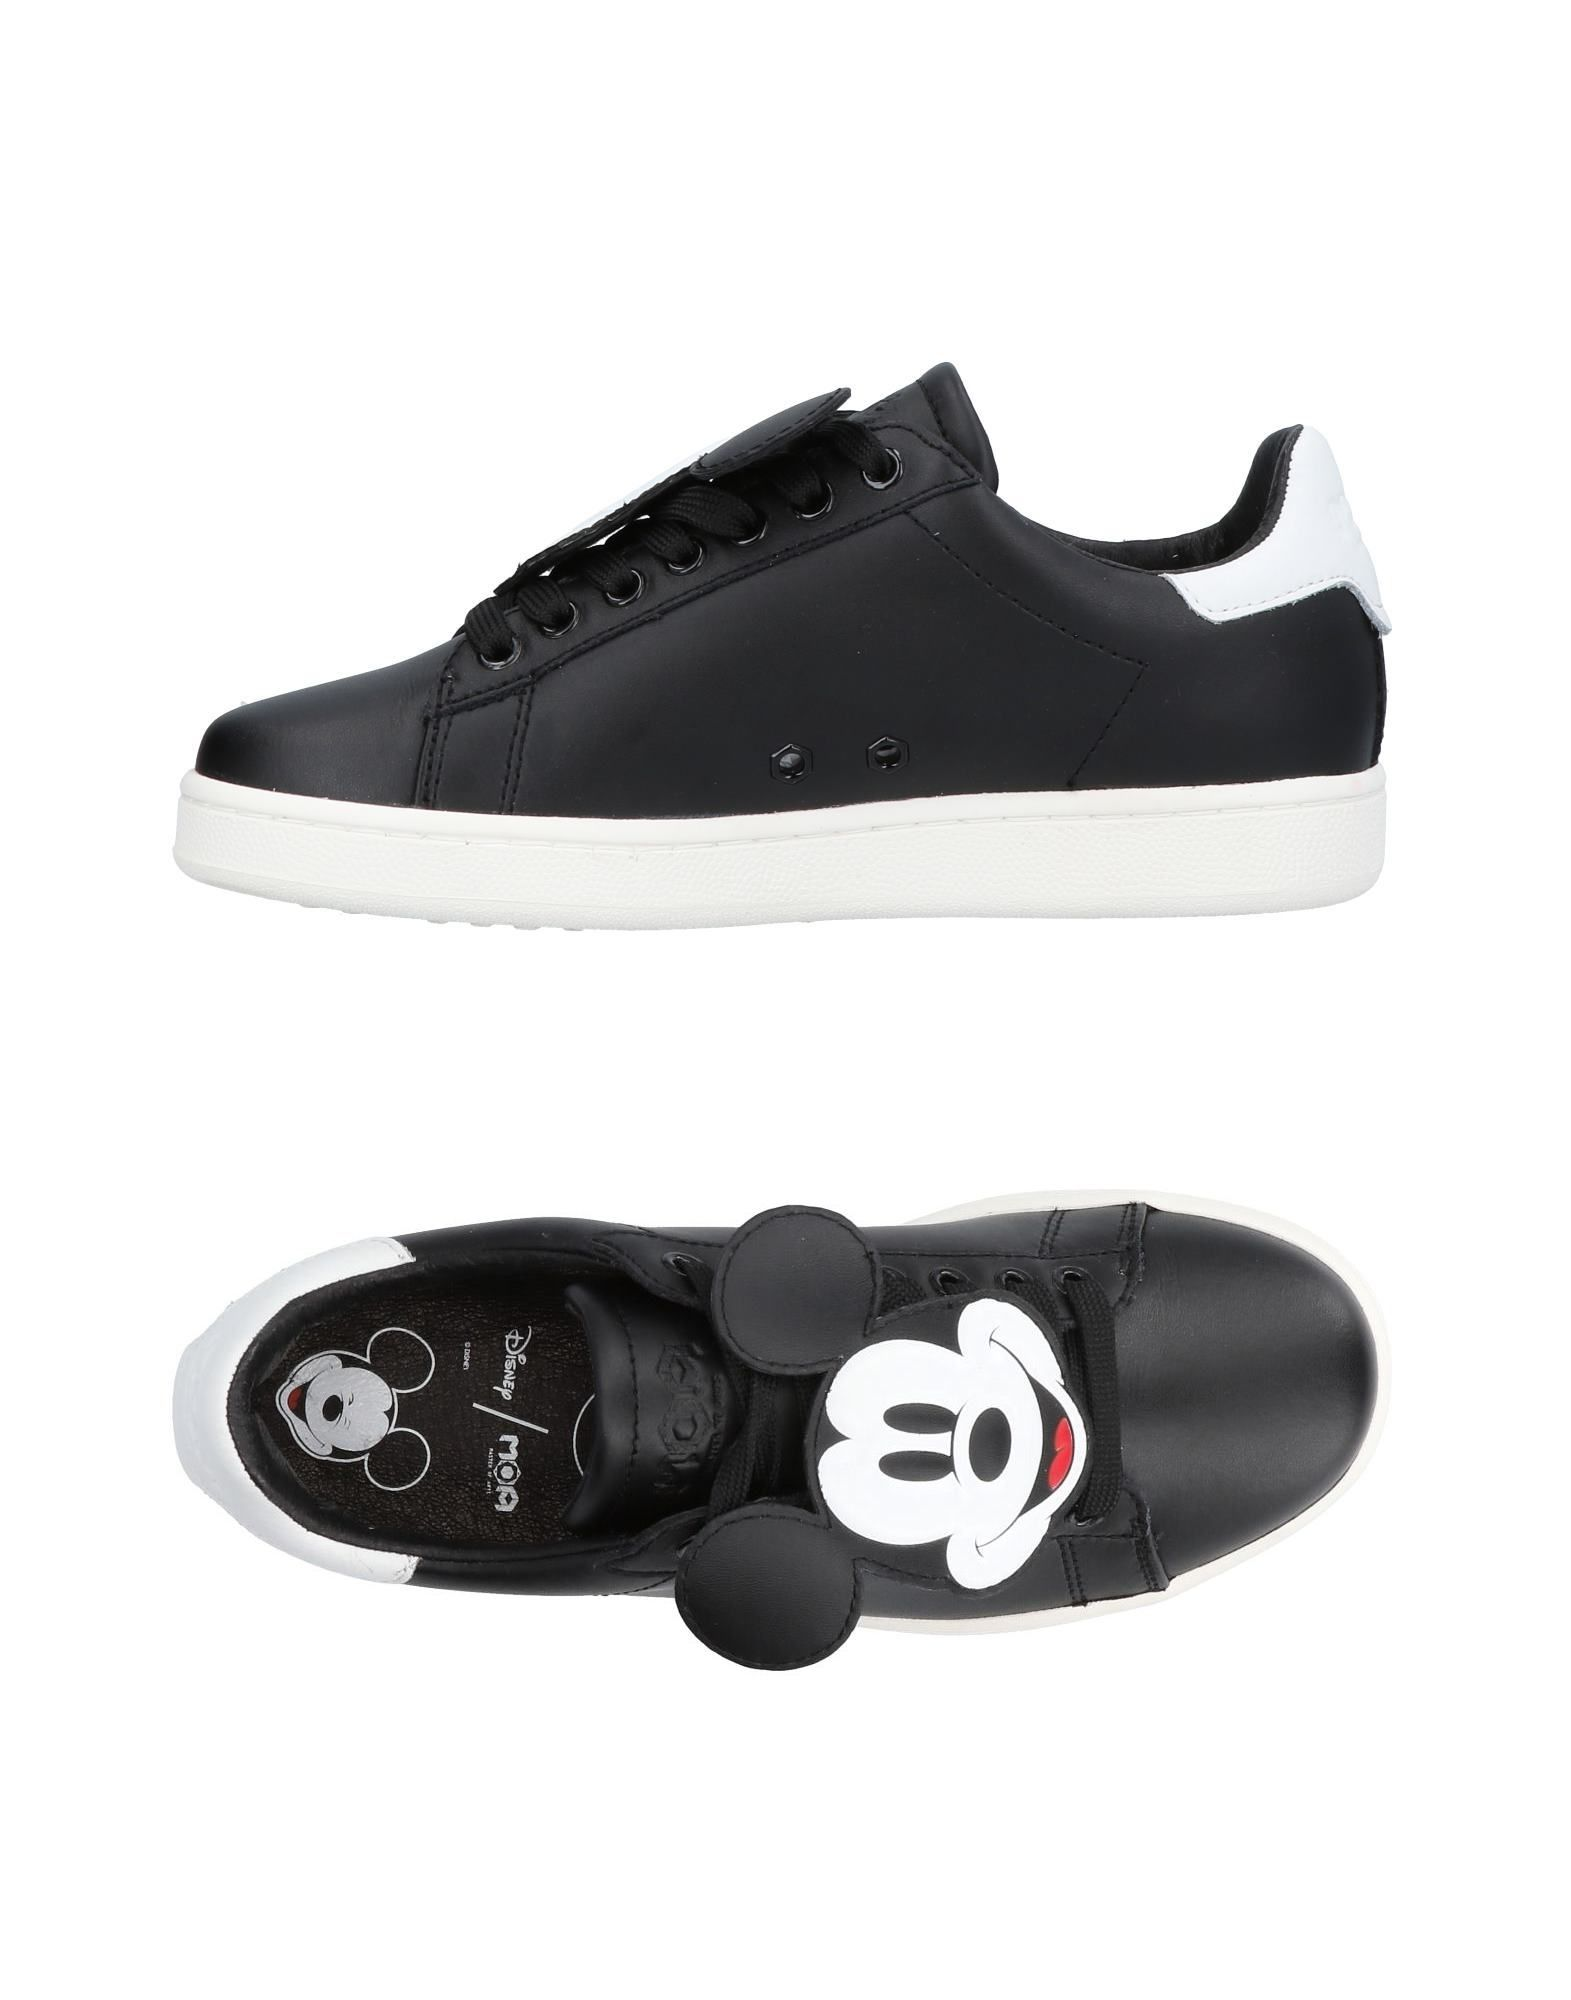 Sneakers Moa Master Of Arts Femme - Sneakers Moa Master Of Arts sur